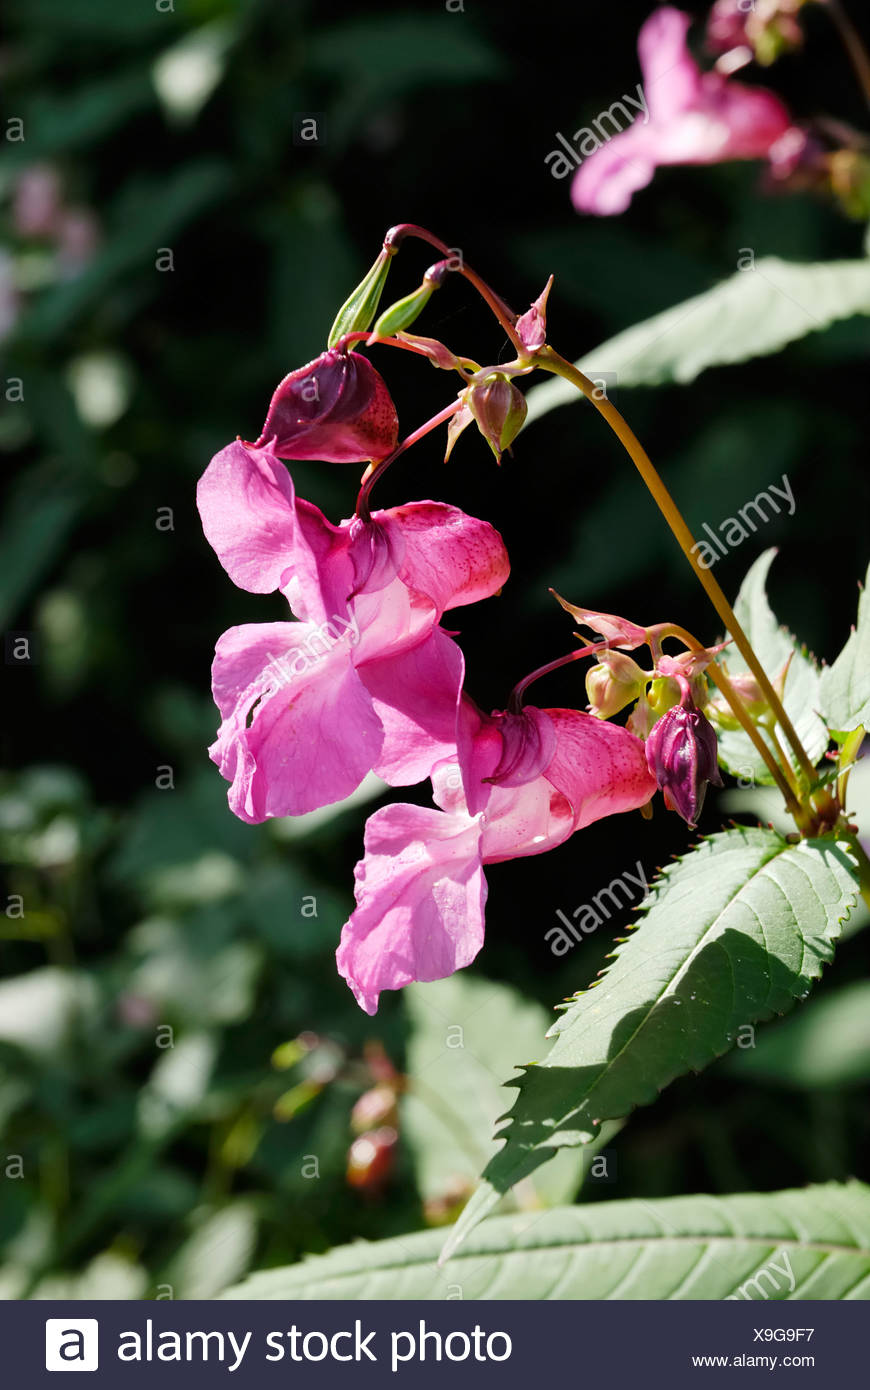 Impatiens glanulifera, Balsaminaceae imported pest displacing endemic species in many places Stock Photo